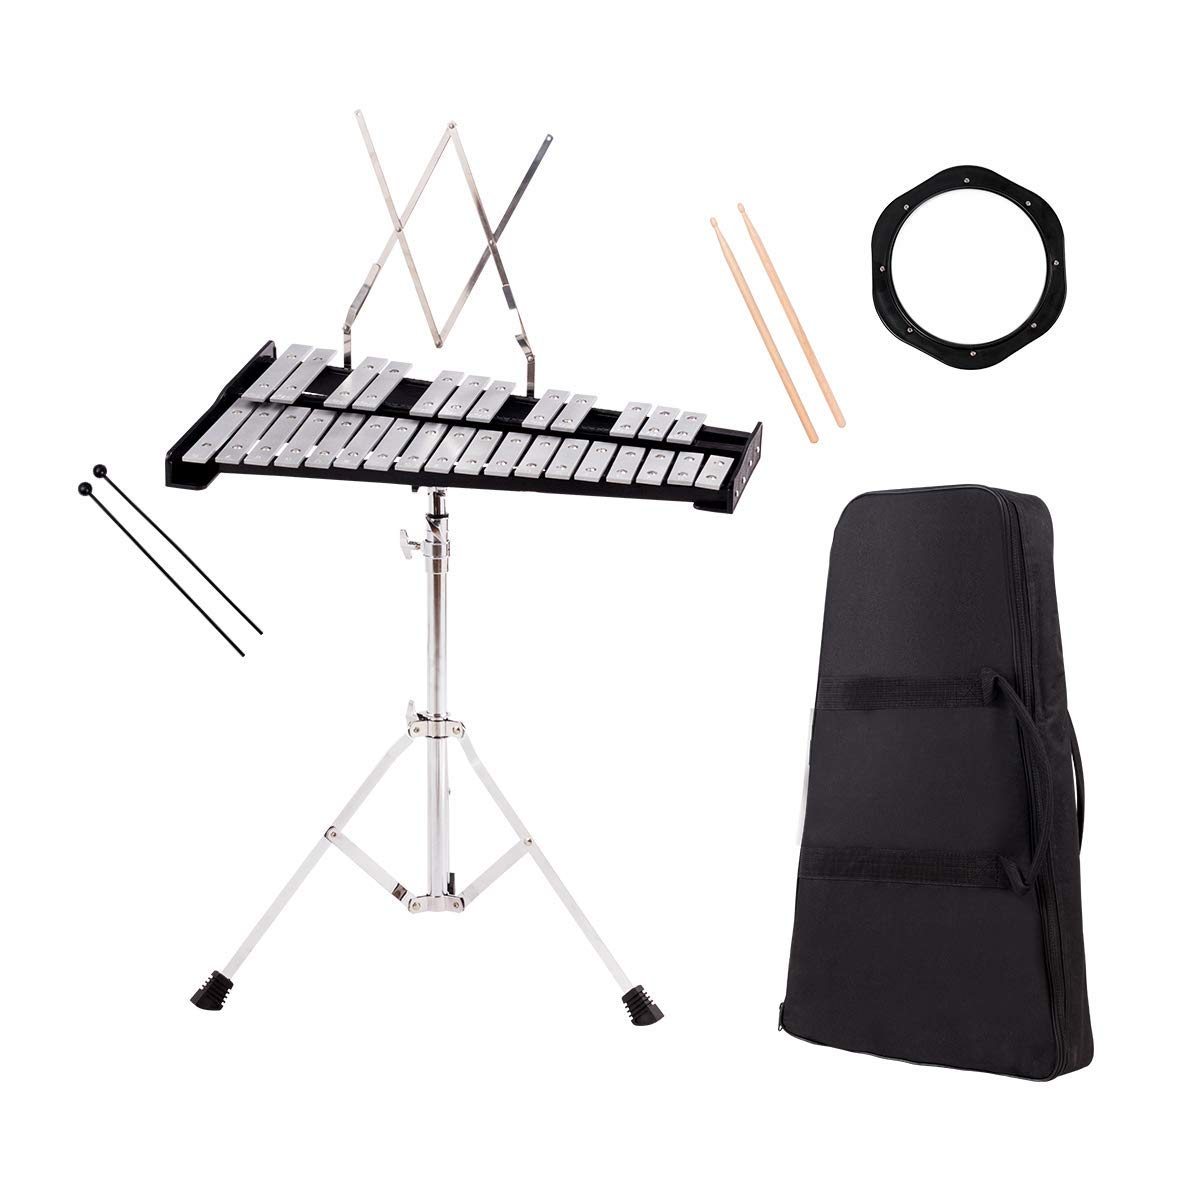 Giantex Percussion Glockenspiel Xylophone Bell Kit 30 Notes w/Practice Pad, Adjustable Height Stand, Bell Mallets, Wooden Sticks, Music Stand, Carrying Bag (22.5'' x 14.5'' x (23-38'')) by Giantex